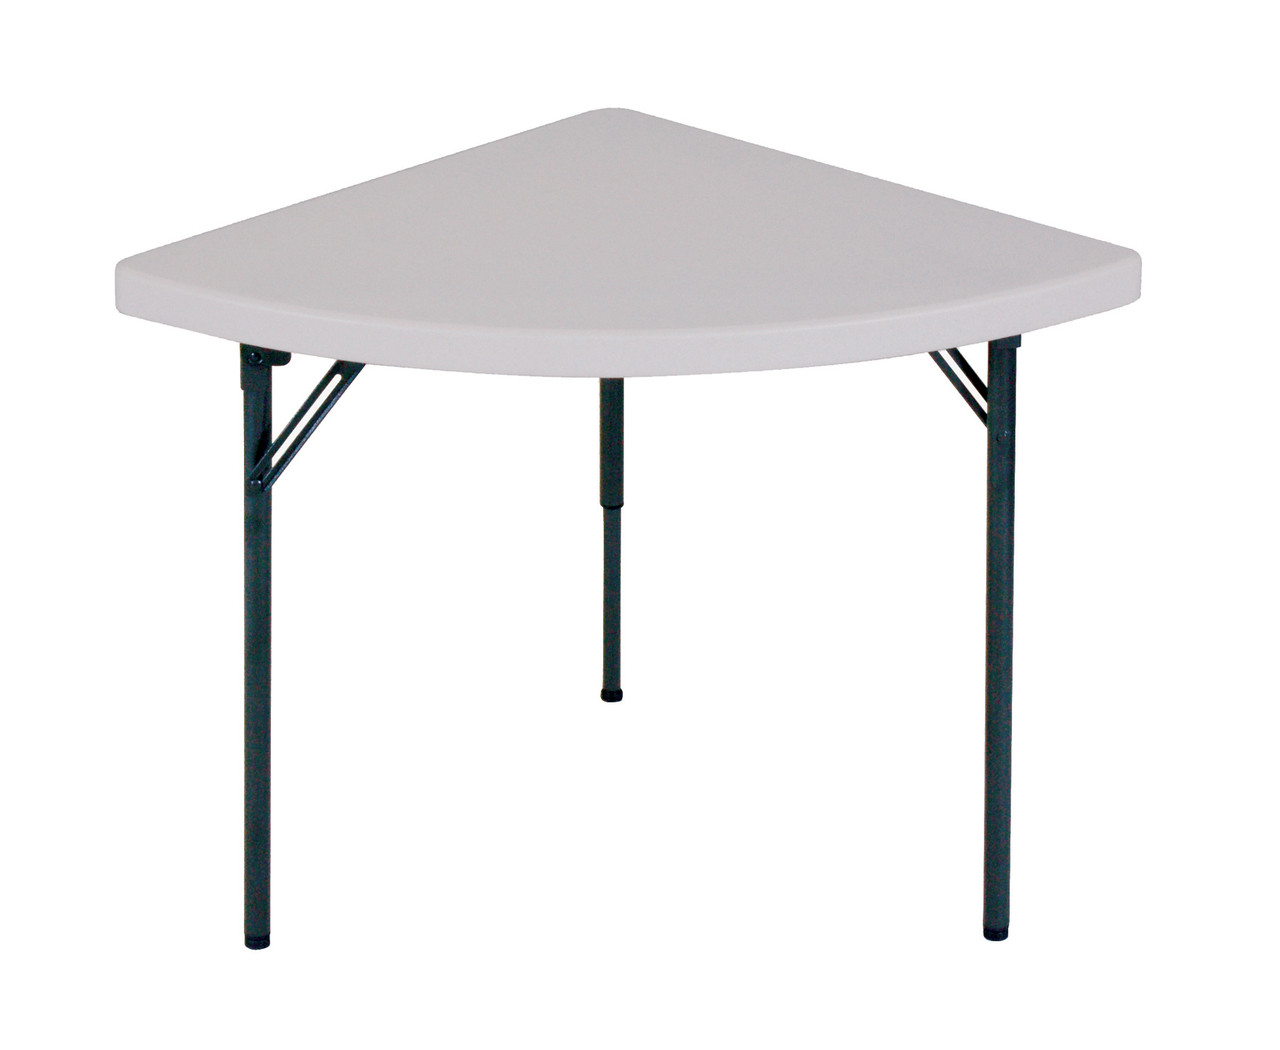 Correll fs3030w wedge lightweight food service folding table for Cuisine table retractable